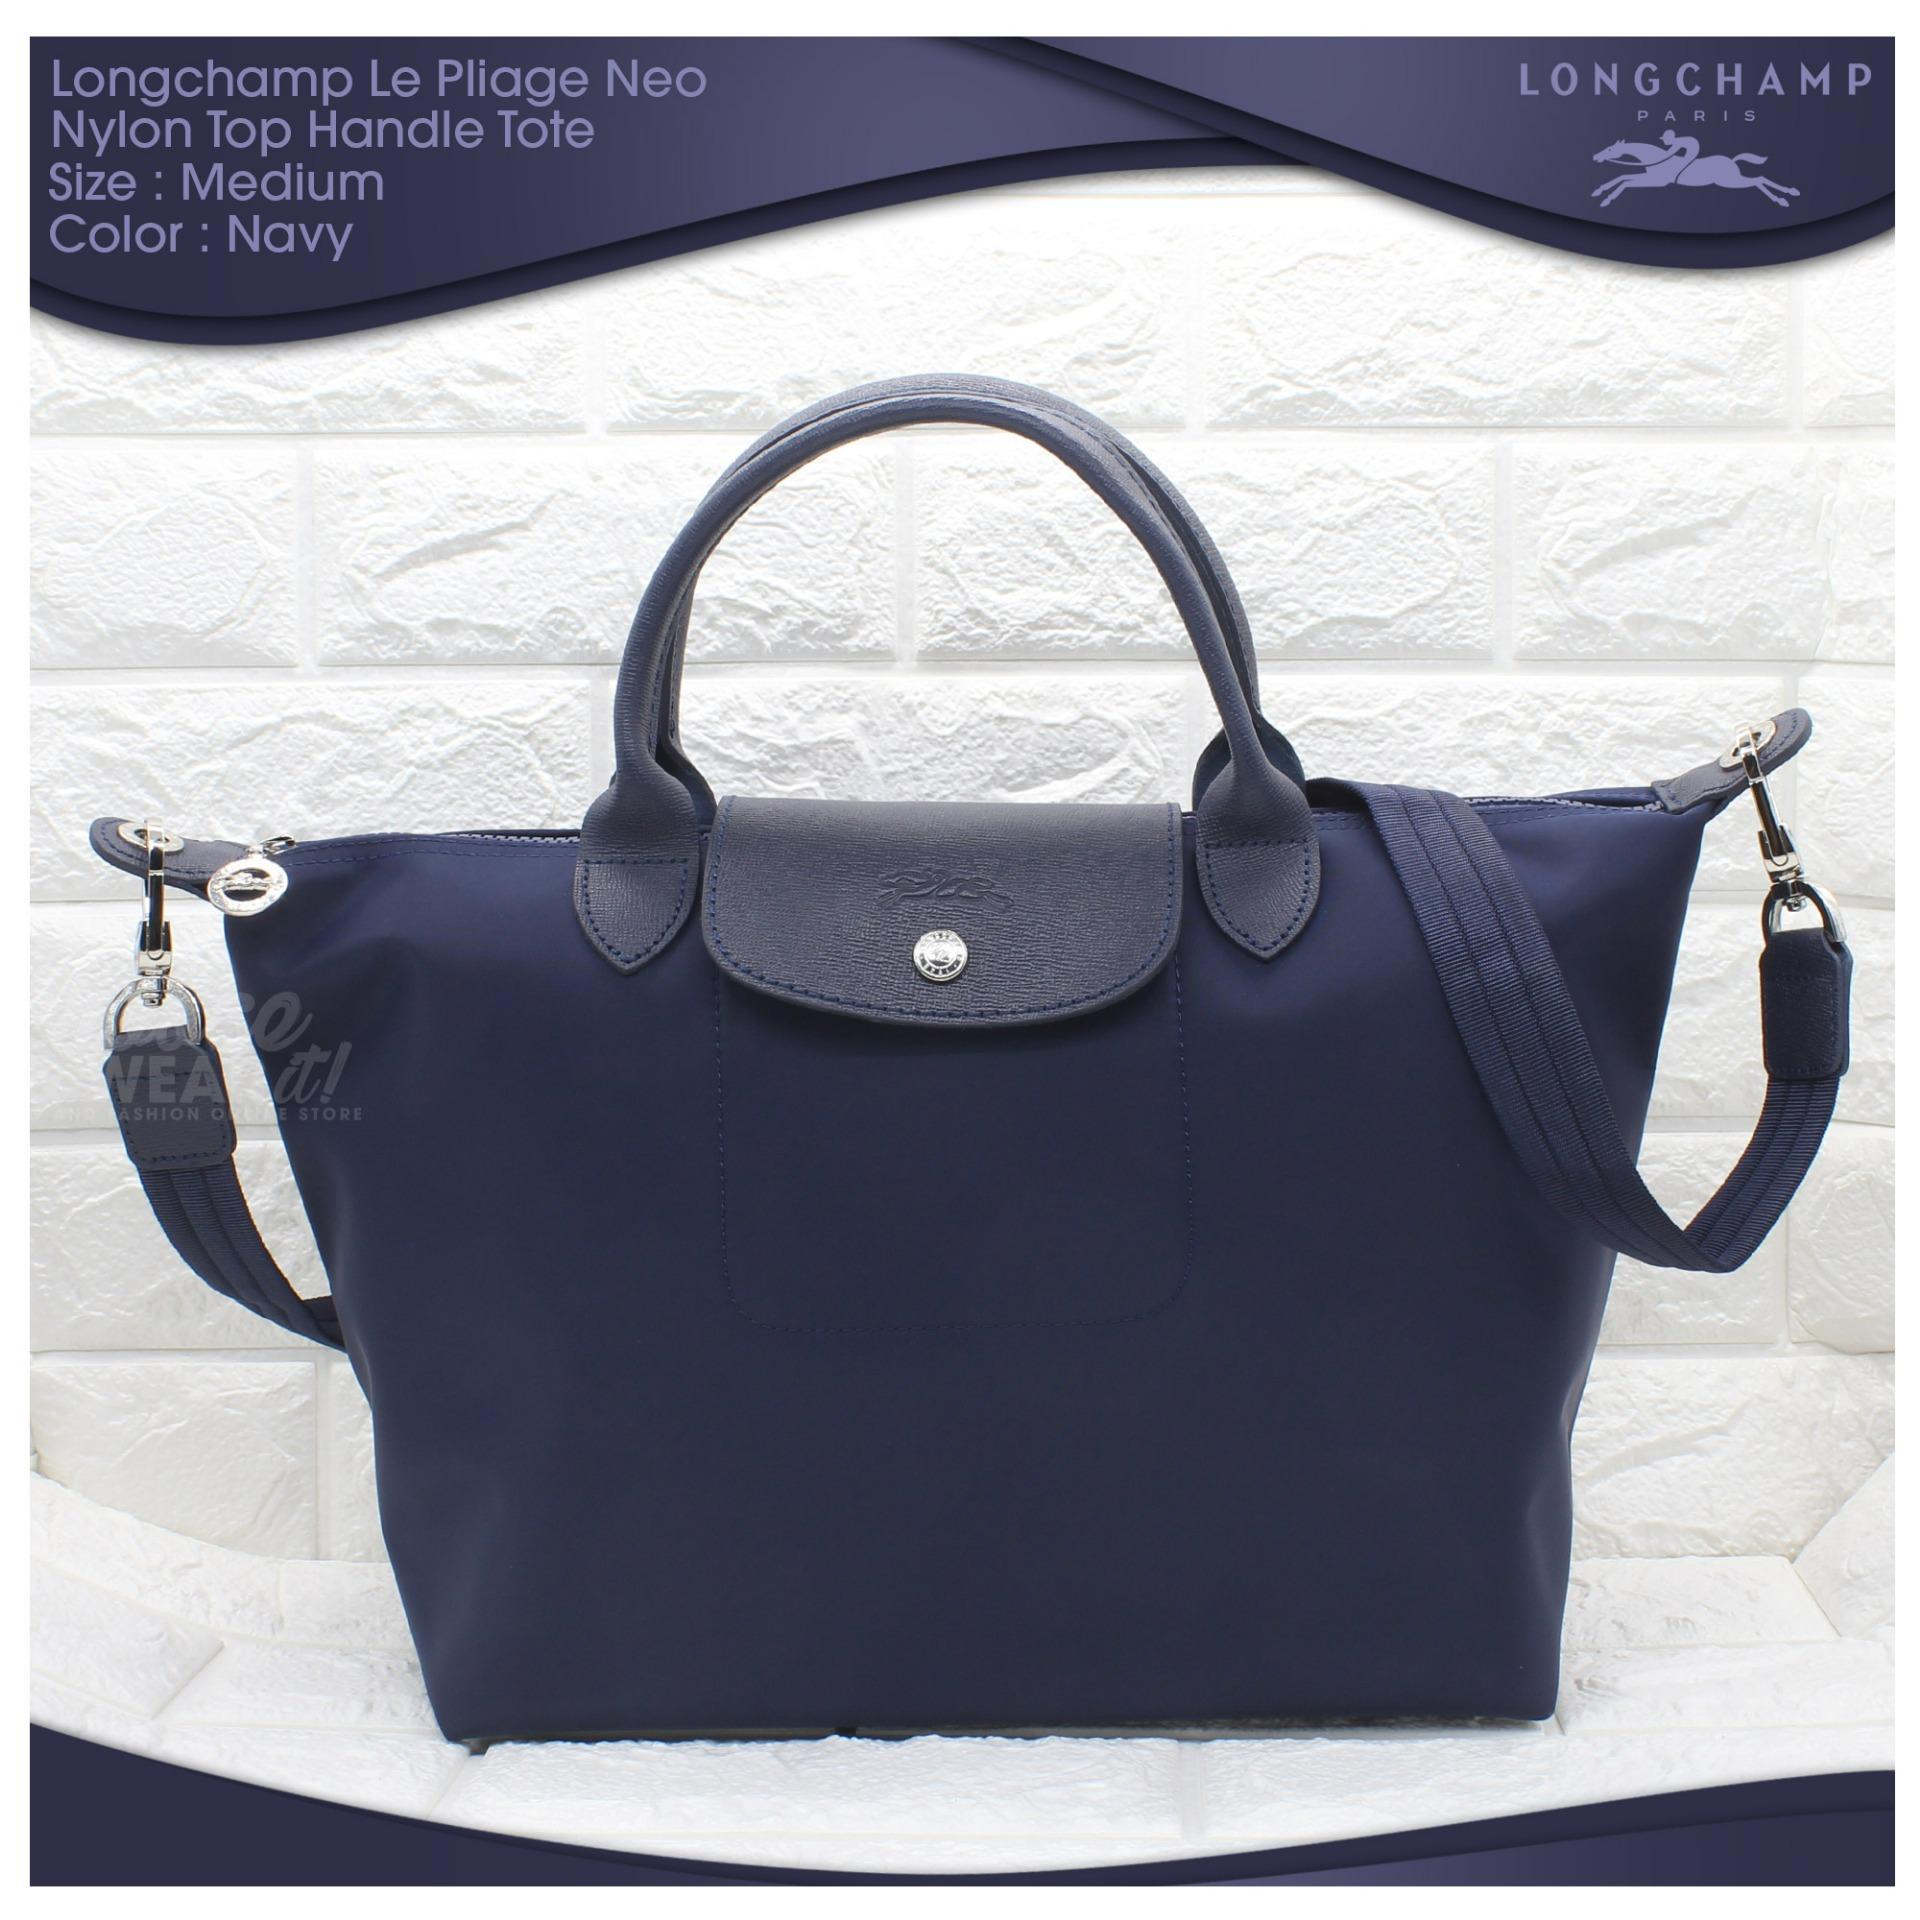 Buy Sell Cheapest Made In France Best Quality Product Deals Longchamp Neo Medium Black Authentic Le Pliage Top Handle Tote Navy Blue